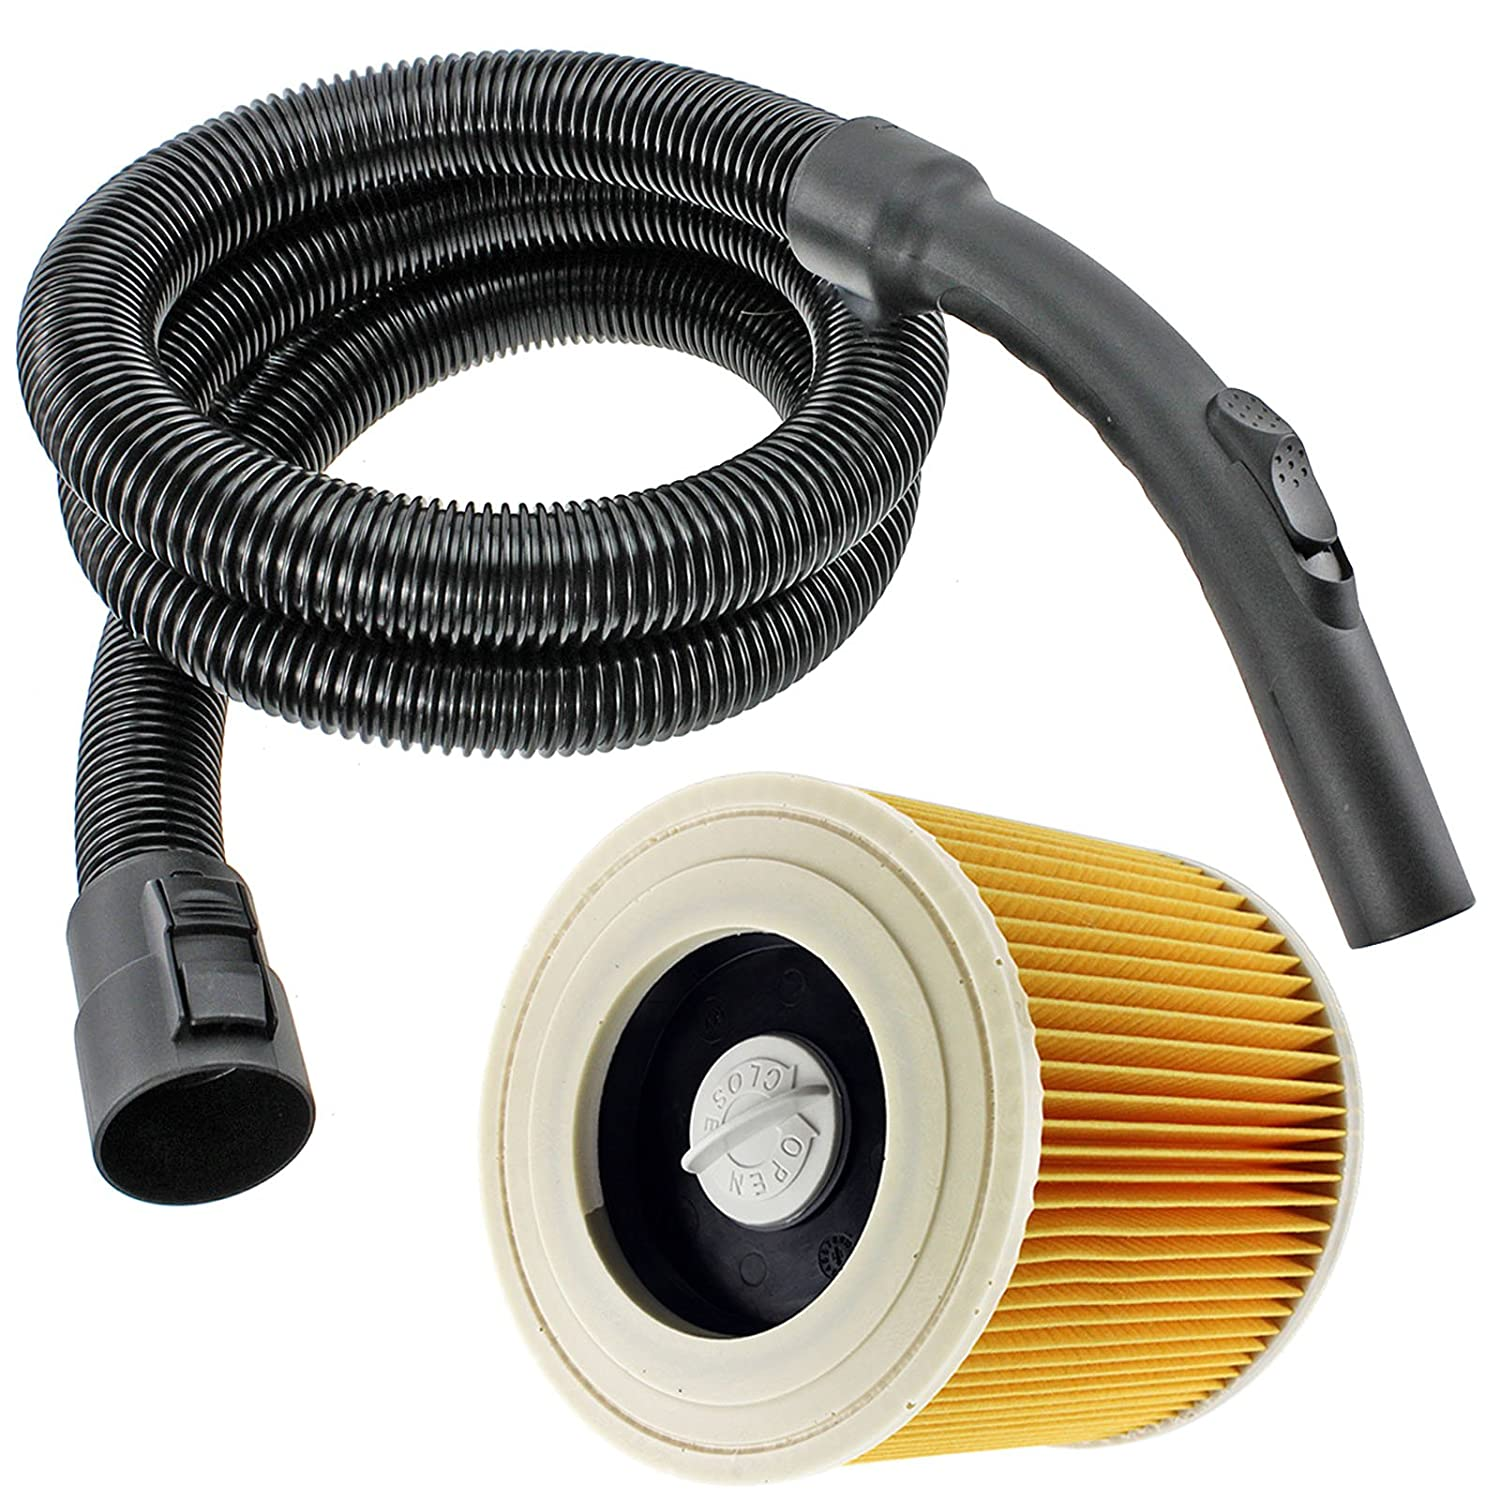 SPARES2GO Complete Pipe Hose Handle + Cartridge Filter for Karcher Vacuum Cleaners (2 Metres)